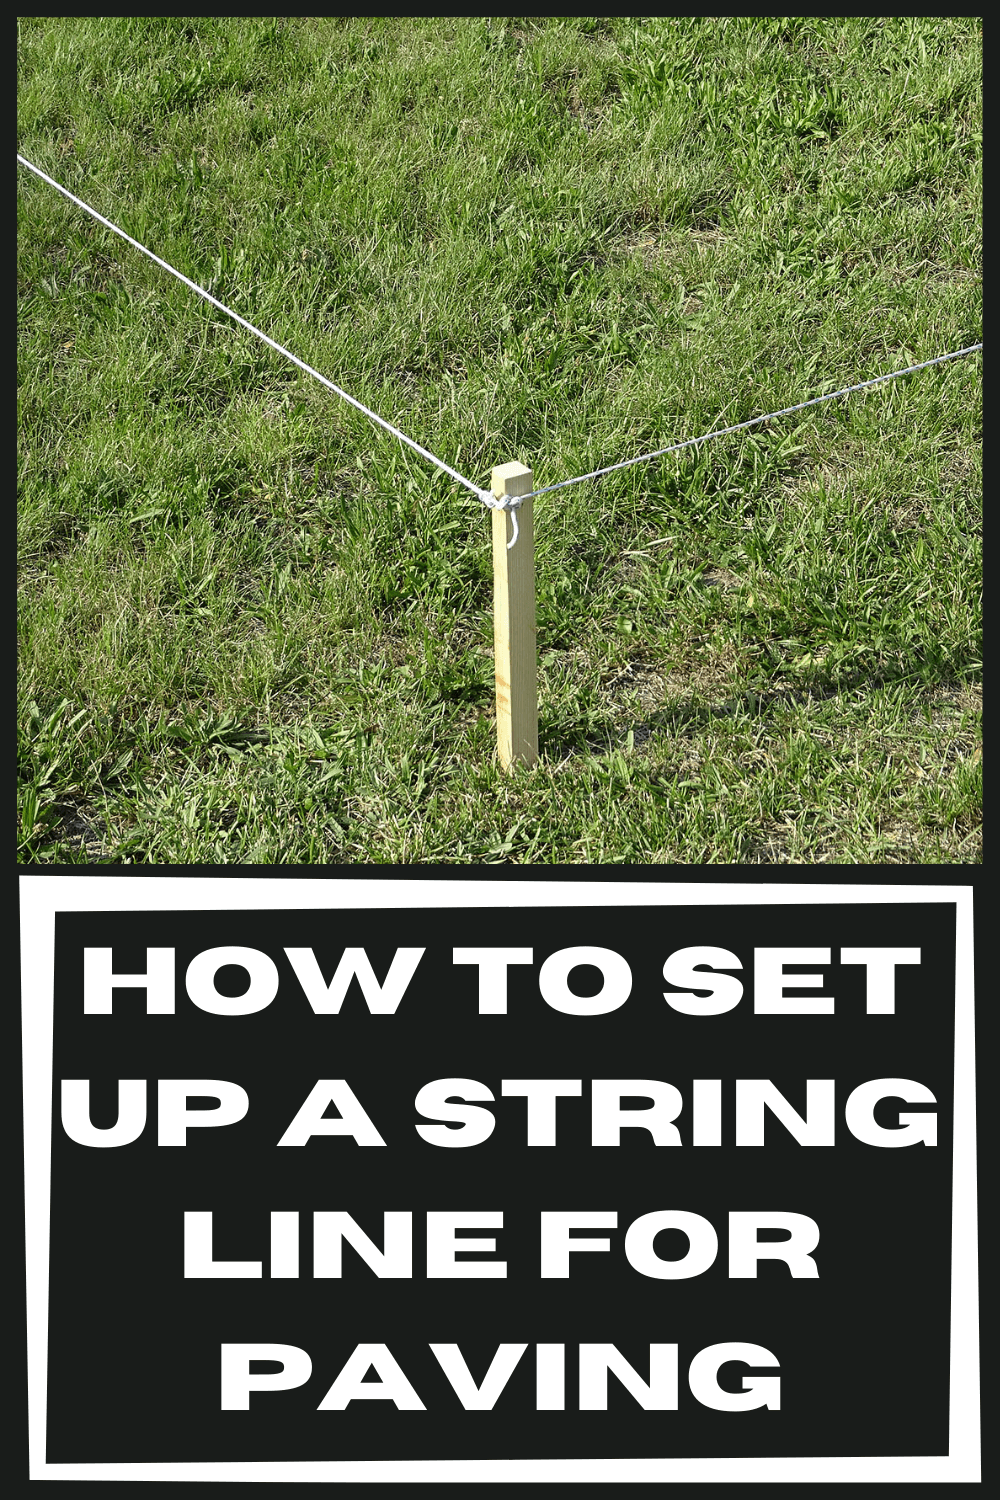 how-to-set-up-a-string-line-for-paving